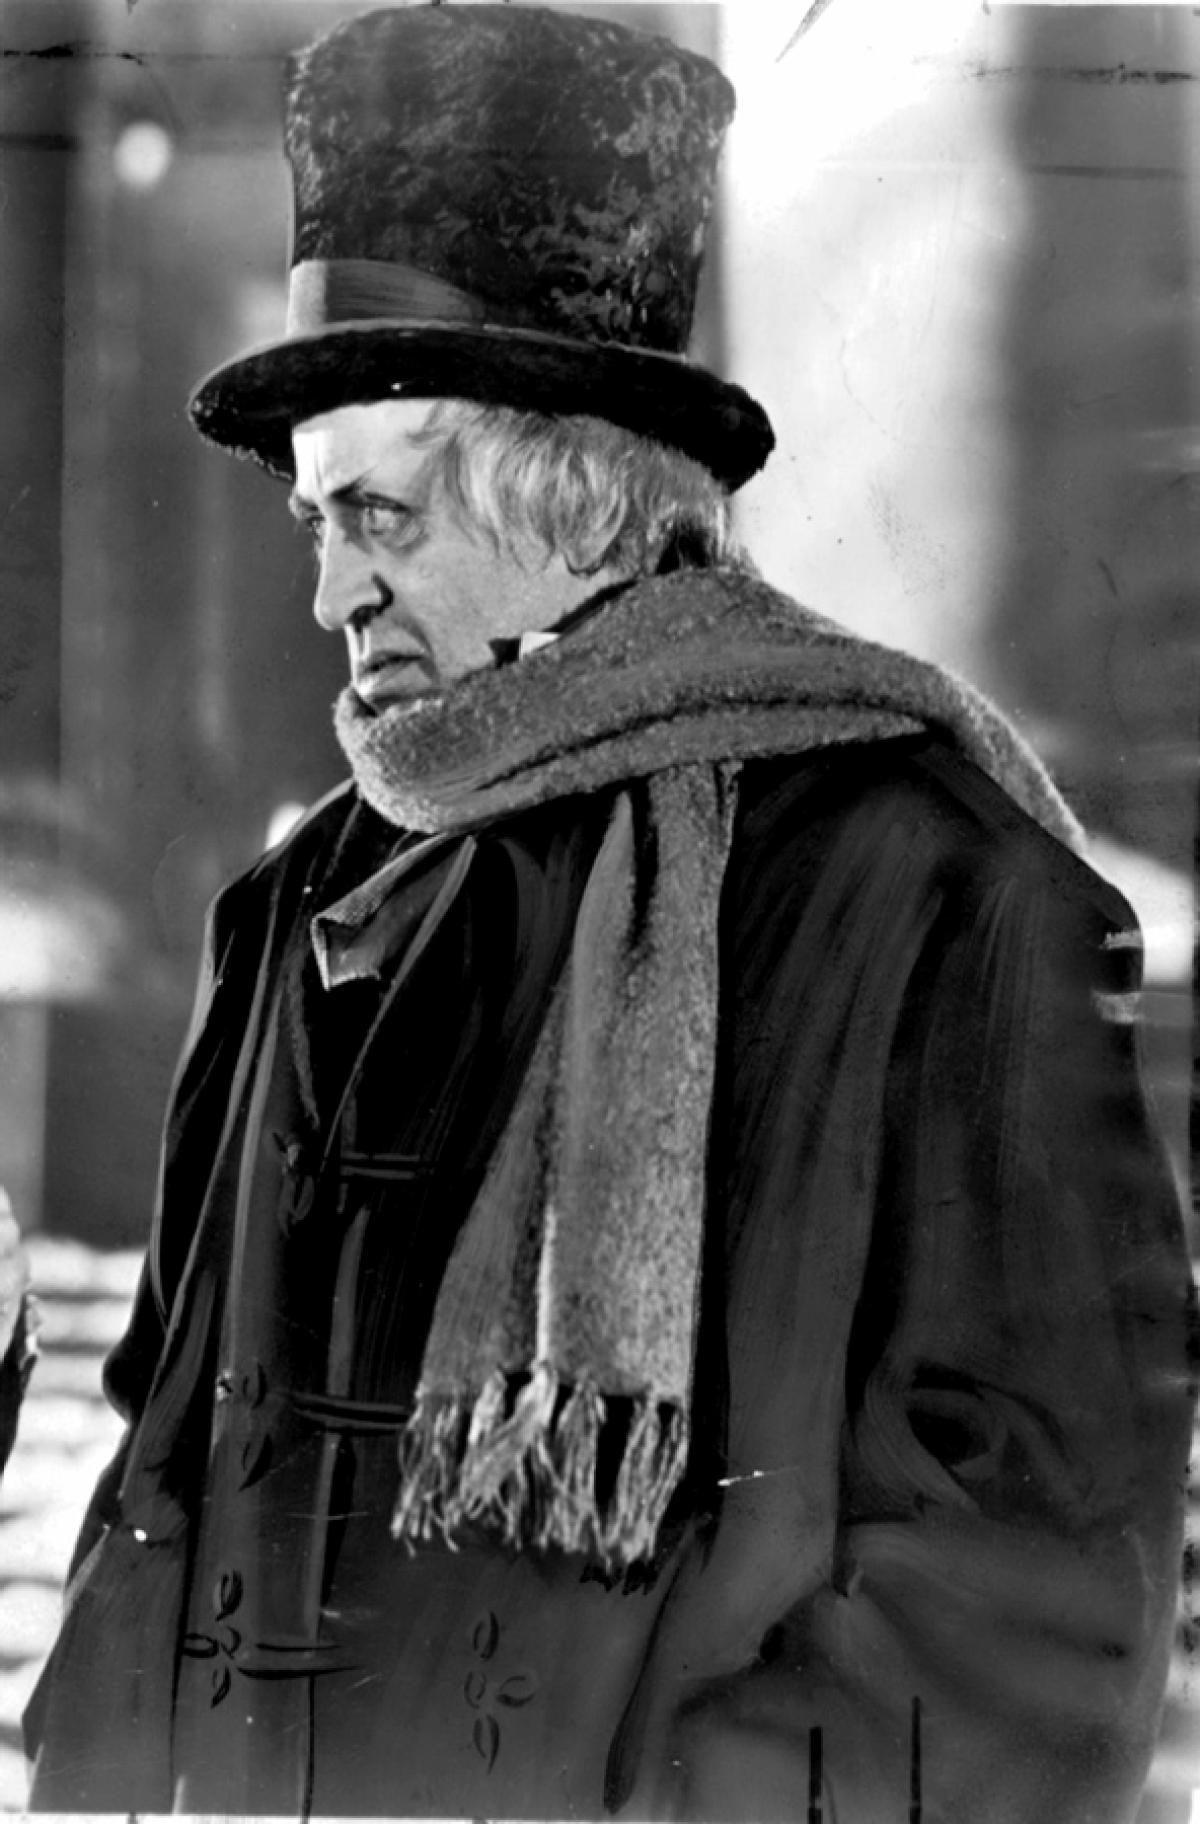 charles dickens yuletide ghost story a christmas carol has been brought to life in countless movies tv specials and theater productions - Christmas Carol 1951